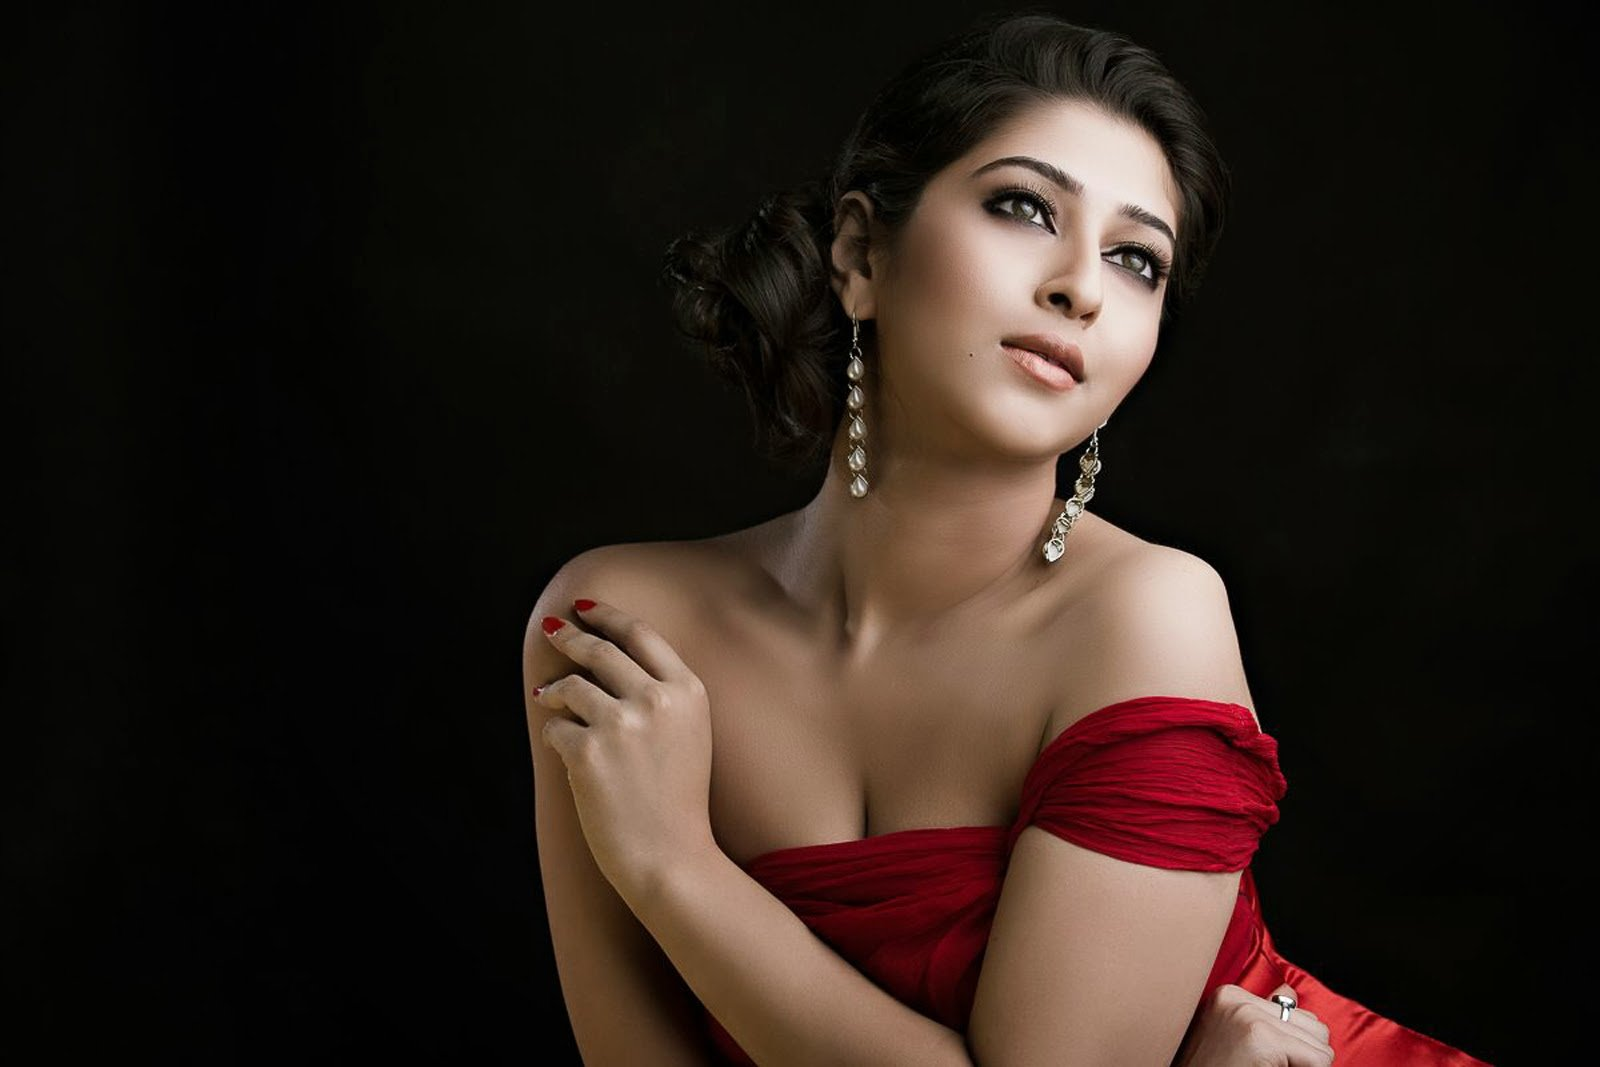 Sonarika Bhadoria hot, indian tv, Indian television, Indian actress, Bahus, TV Actress, hot tv actress, sexy TV Actress, Indian Television photos, hot actress 2015, tv actress photos, hot tv, sexy tv, tv actor photos, star plus actor, sony tv actor, life ok actor, sab tv actor, colors tv actor